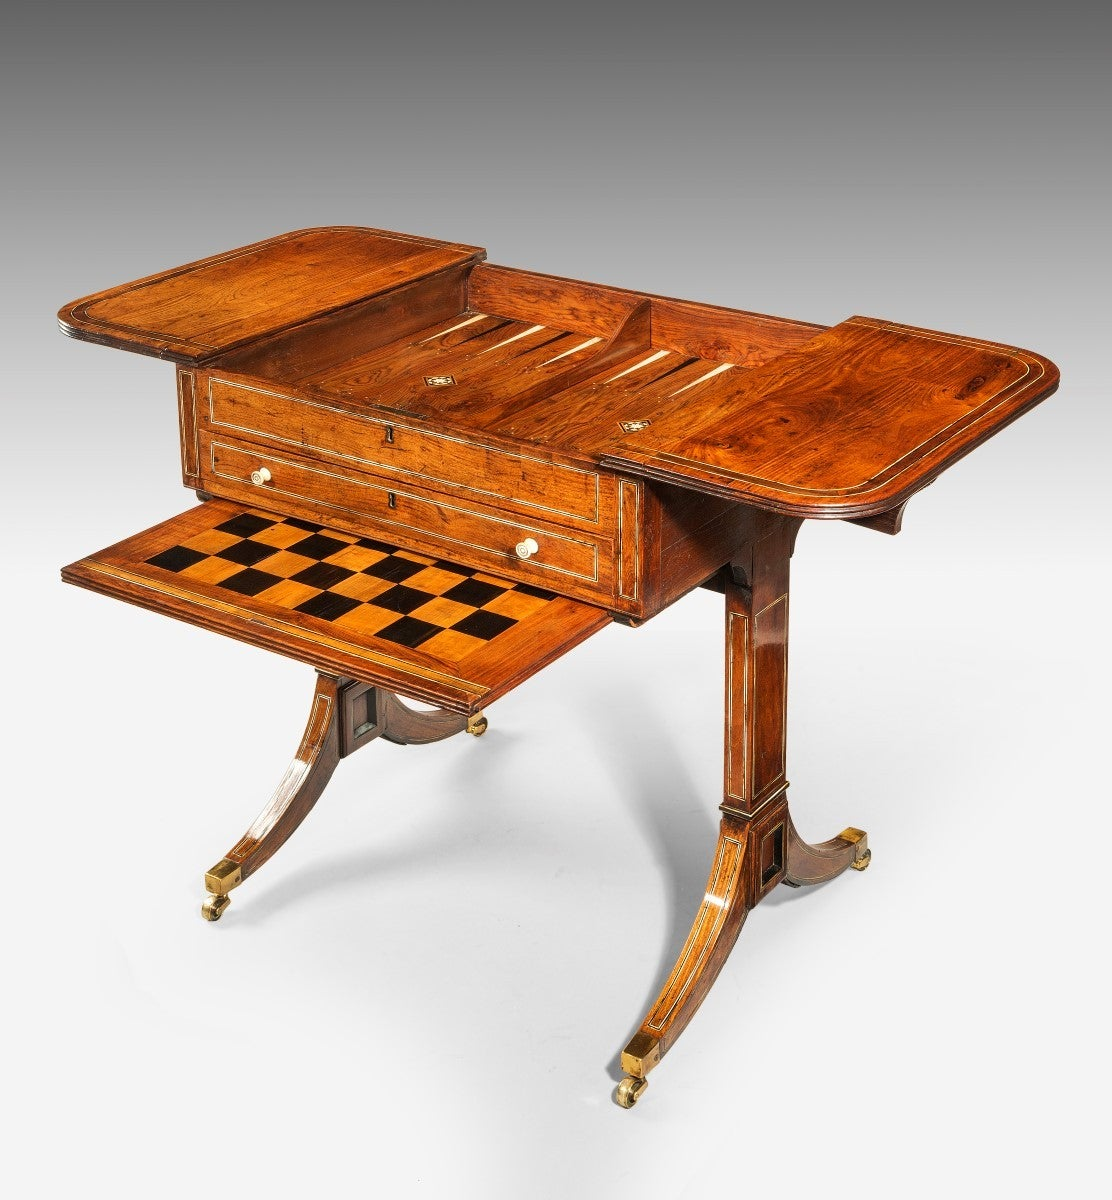 Chinese export padouk wood games table for sale at stdibs